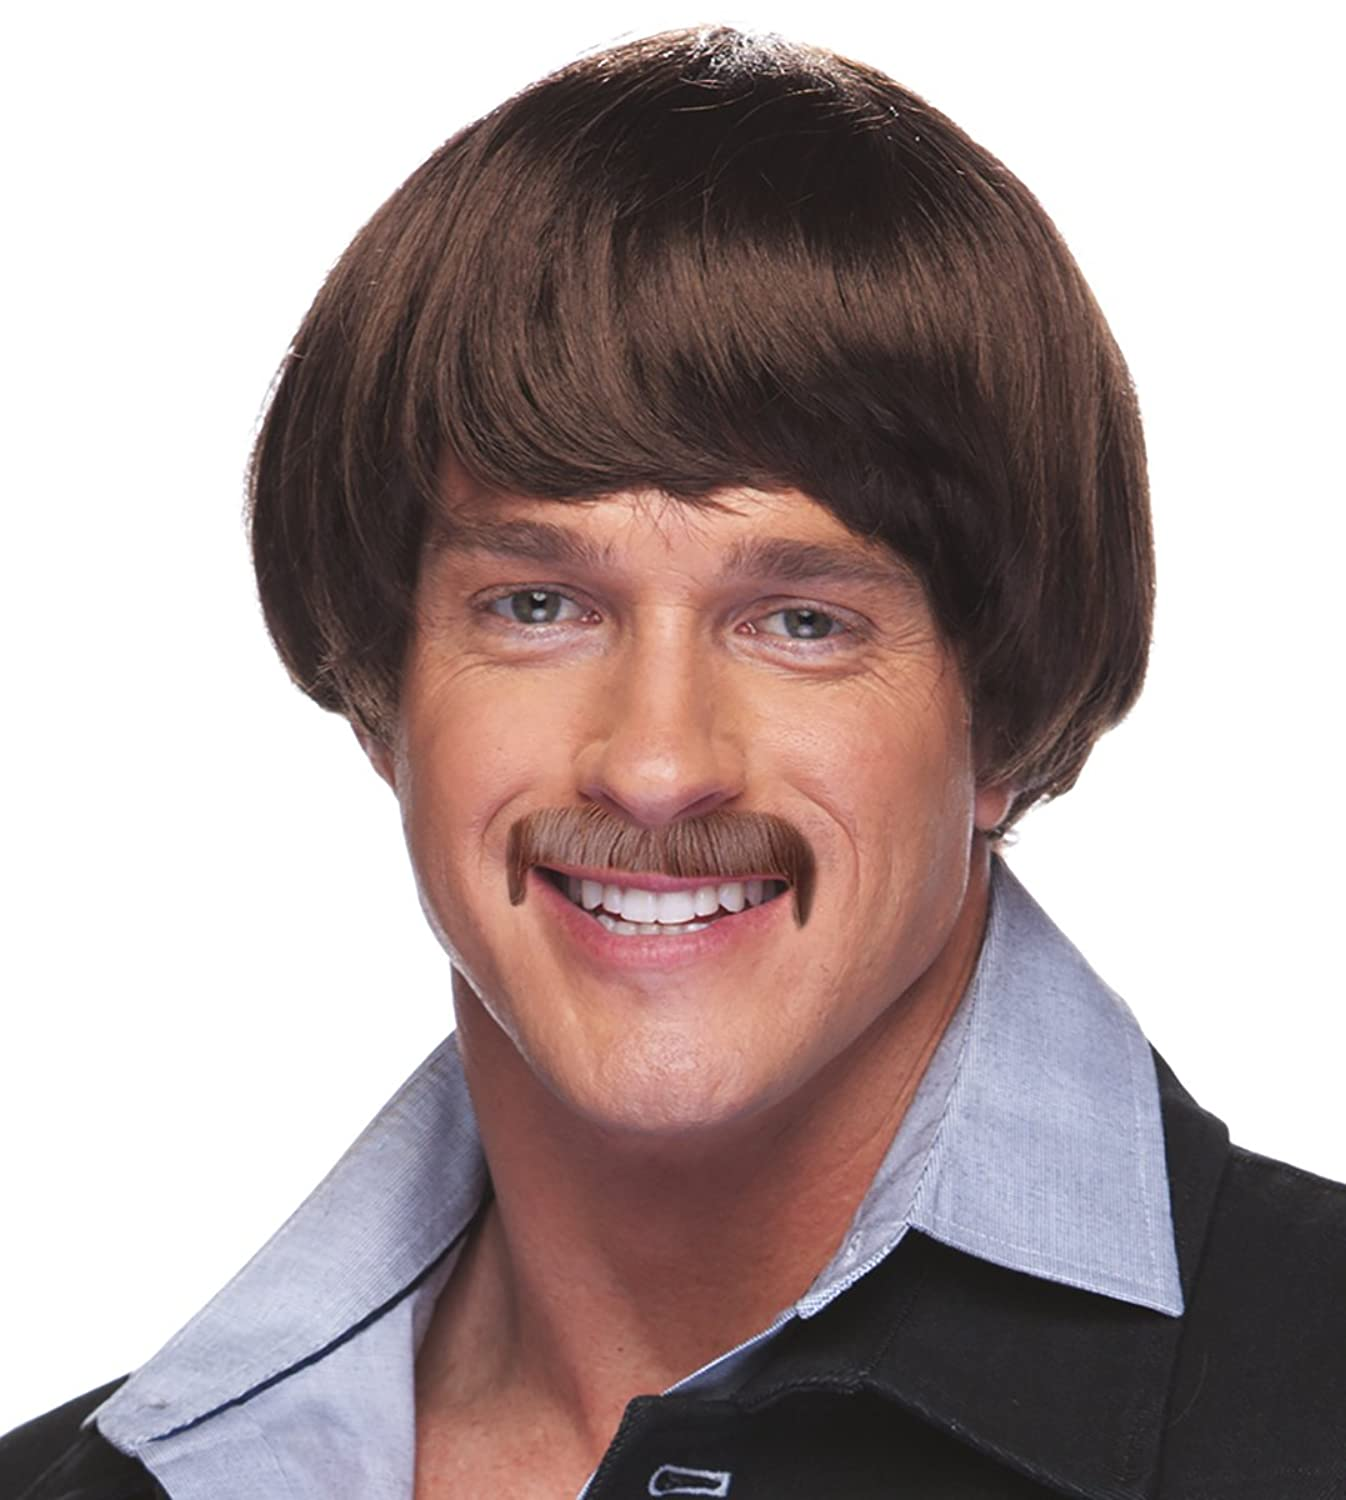 Sonny Bono Costume Wig and Mustache